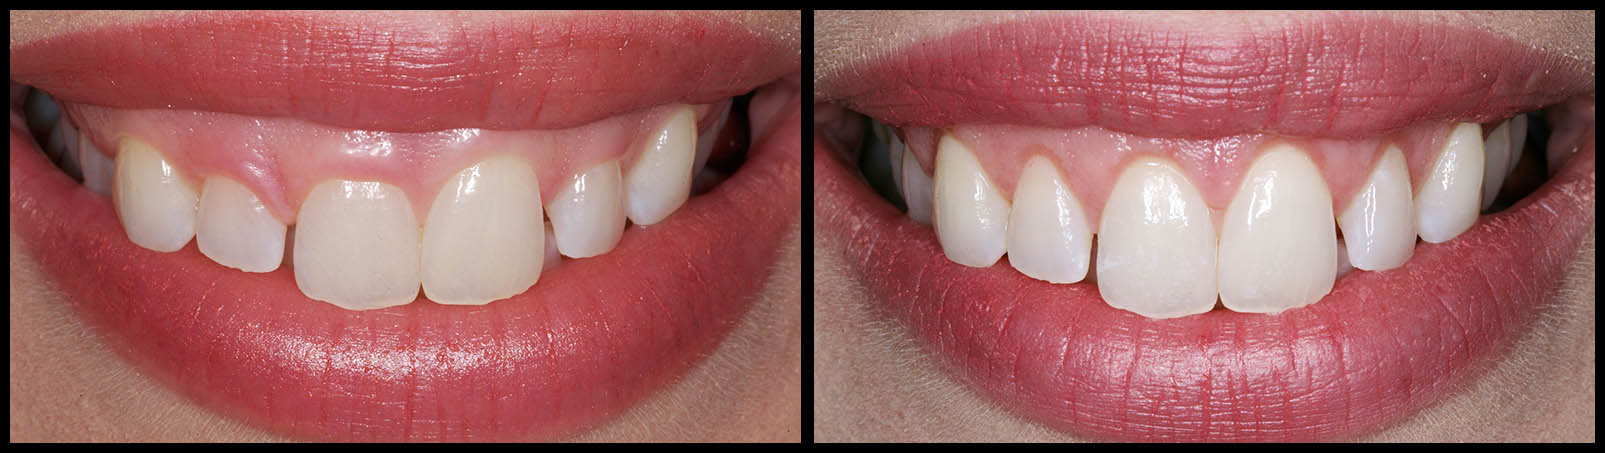 Gum Lift - Before and After bunker hill dentistry